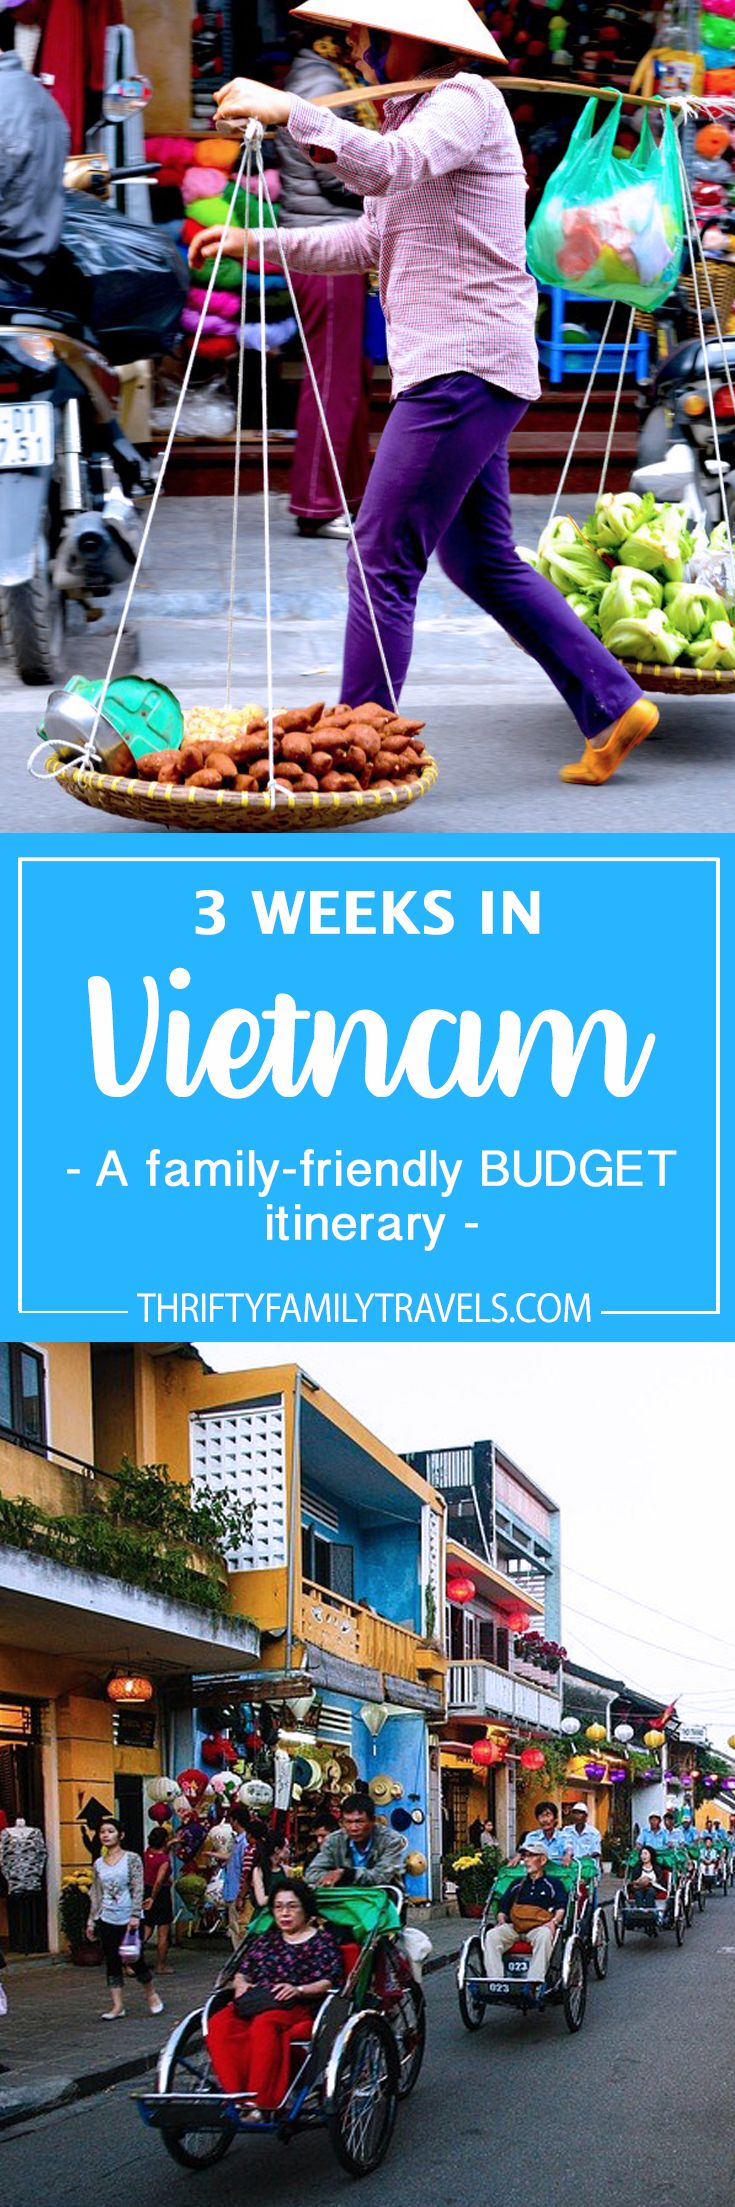 Budget family travel for your trip to Vietnam | www.thriftyfamilytravels.com Research the Halong Bay Mob.